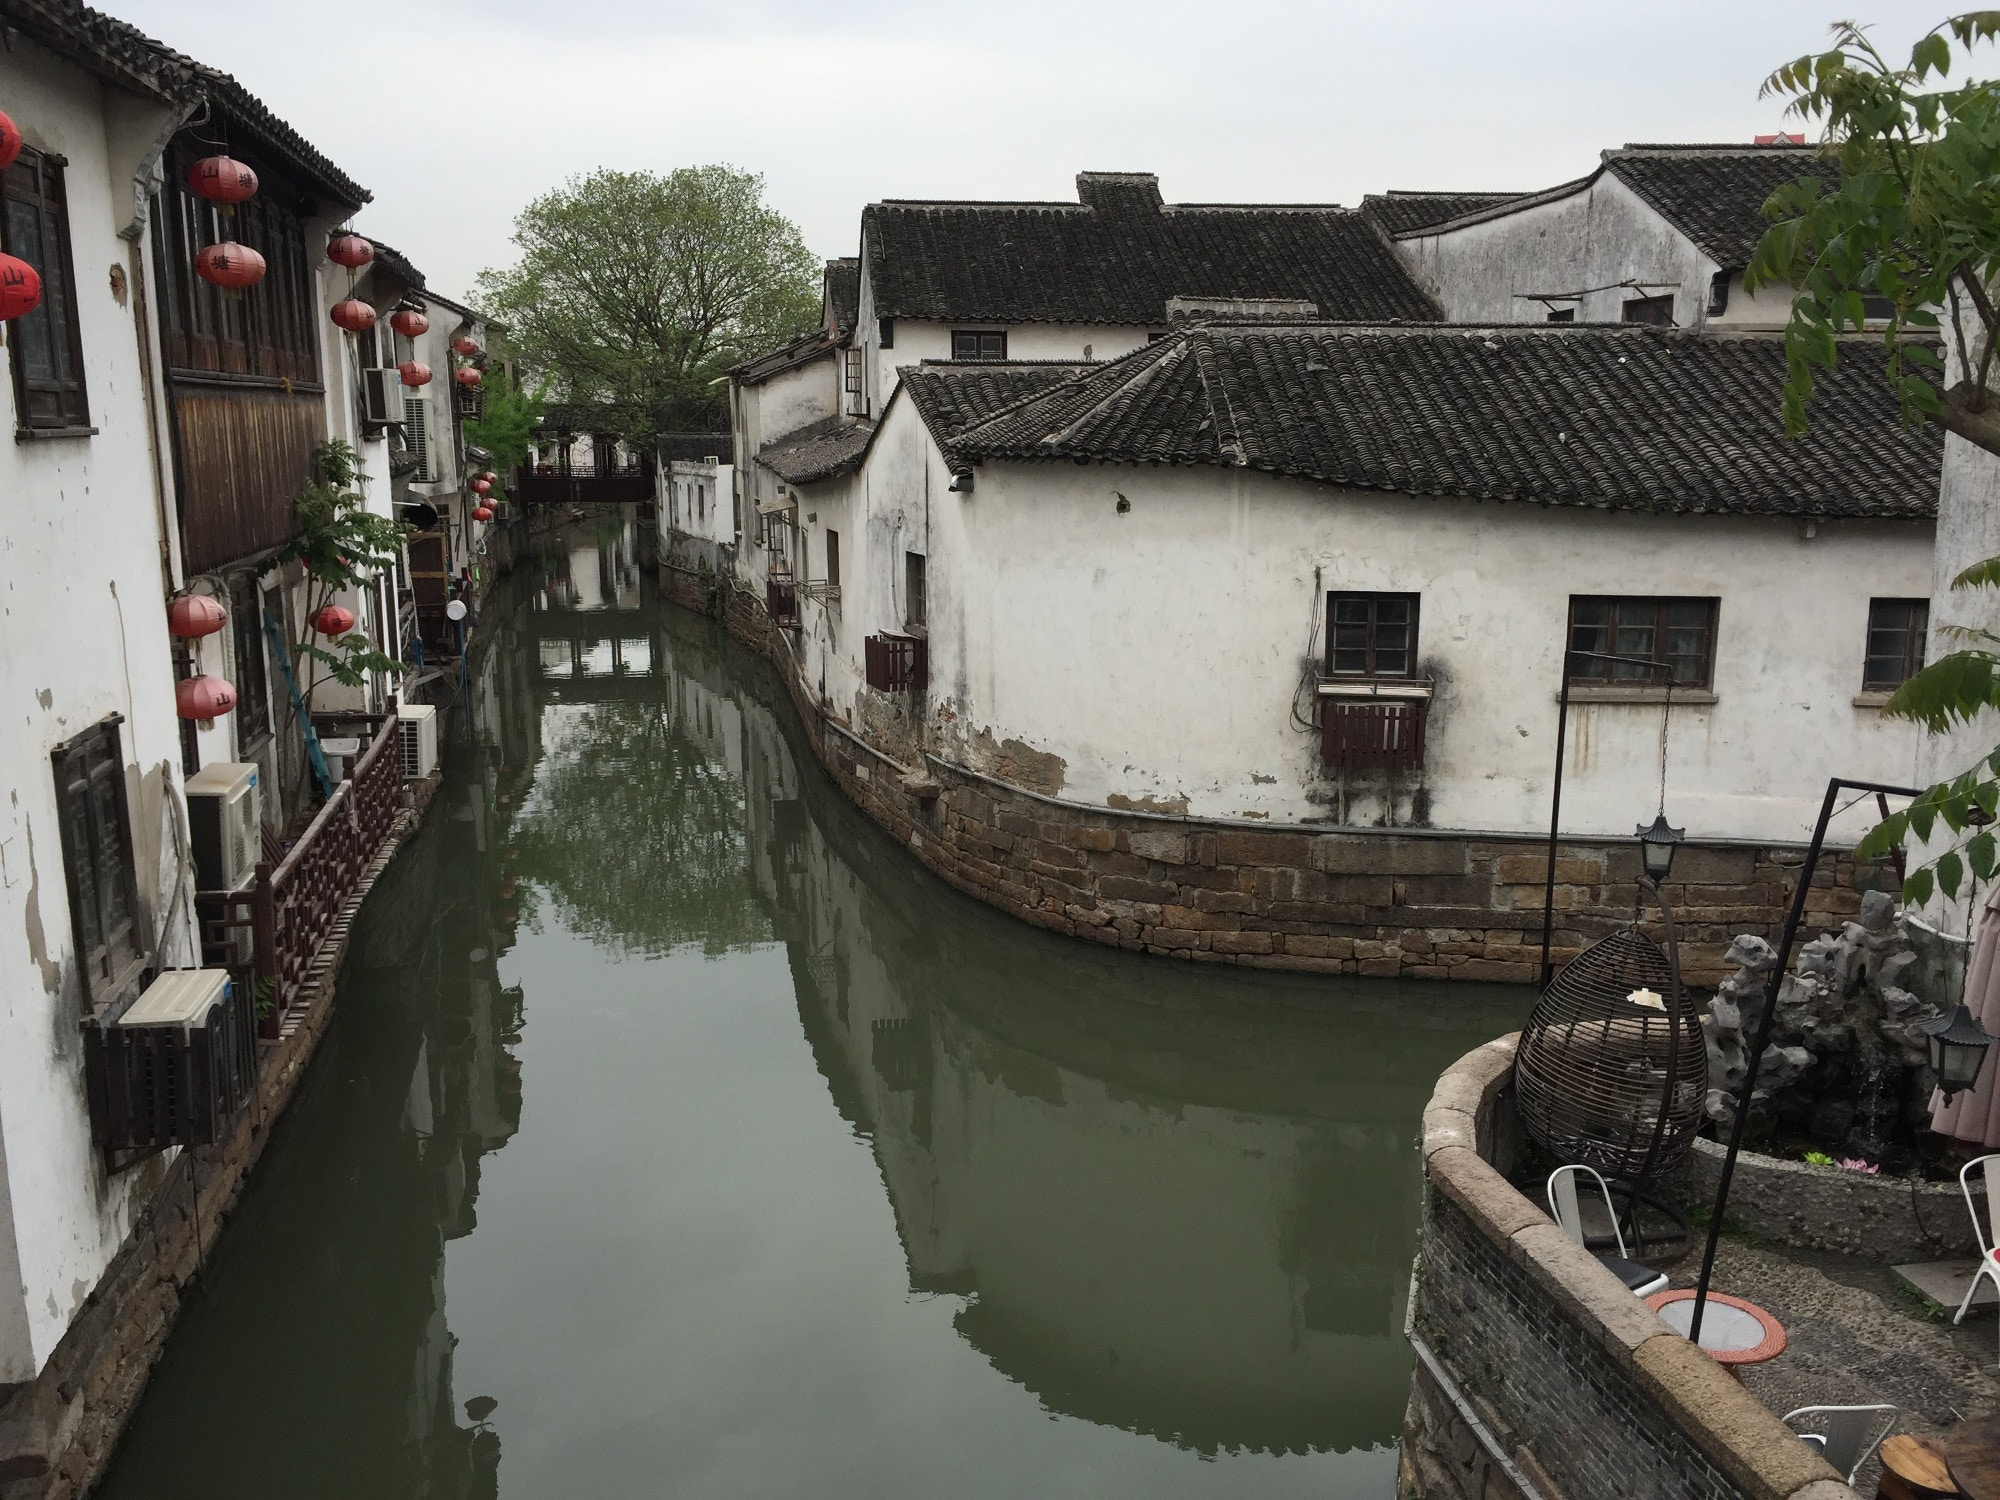 Examples of traditional Jiangnan-style architecture along Suzhou's canals © Megan Eaves